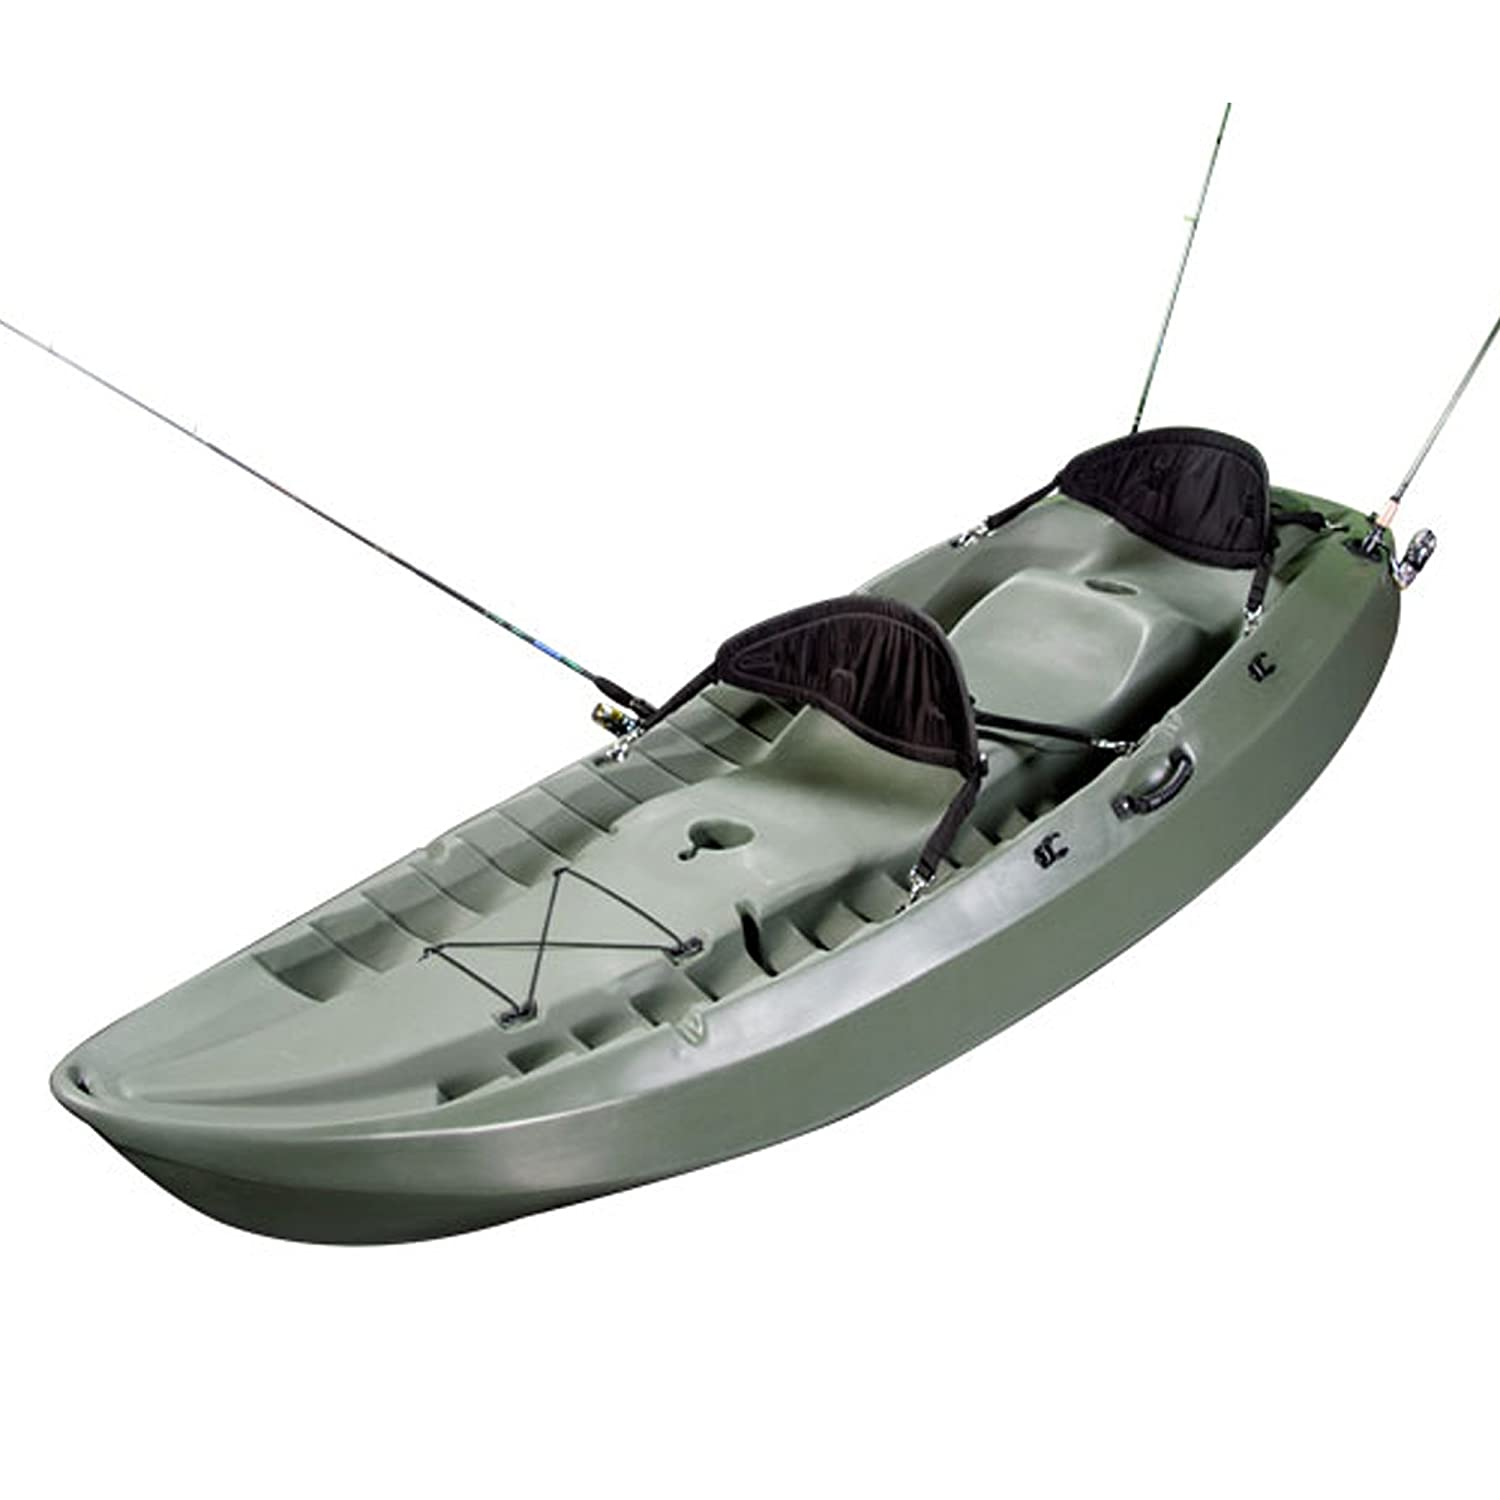 Best fishing kayak reviews 2015 2016 ultimate guides for Best inflatable fishing kayak